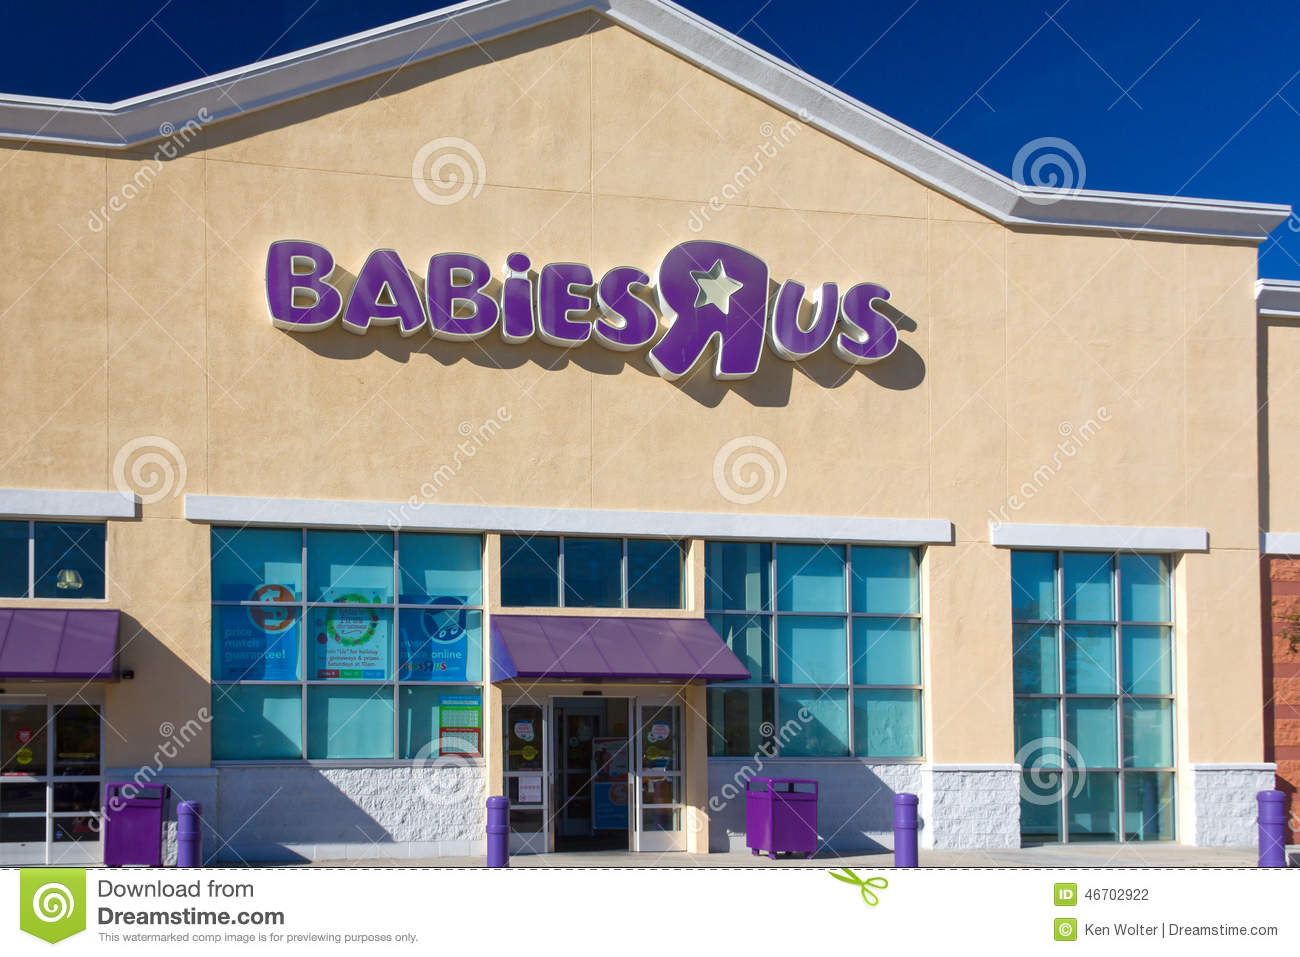 The Baby Store also has featured shops that cater to specific needs. This makes it easy to find special products right for you--such as the Bedding Store, the Baby Gifts Store, Shop the Room, and the Premium Nursery. With our Subscribe & Save program, we'll help you save money while stocking up on all your essentials.